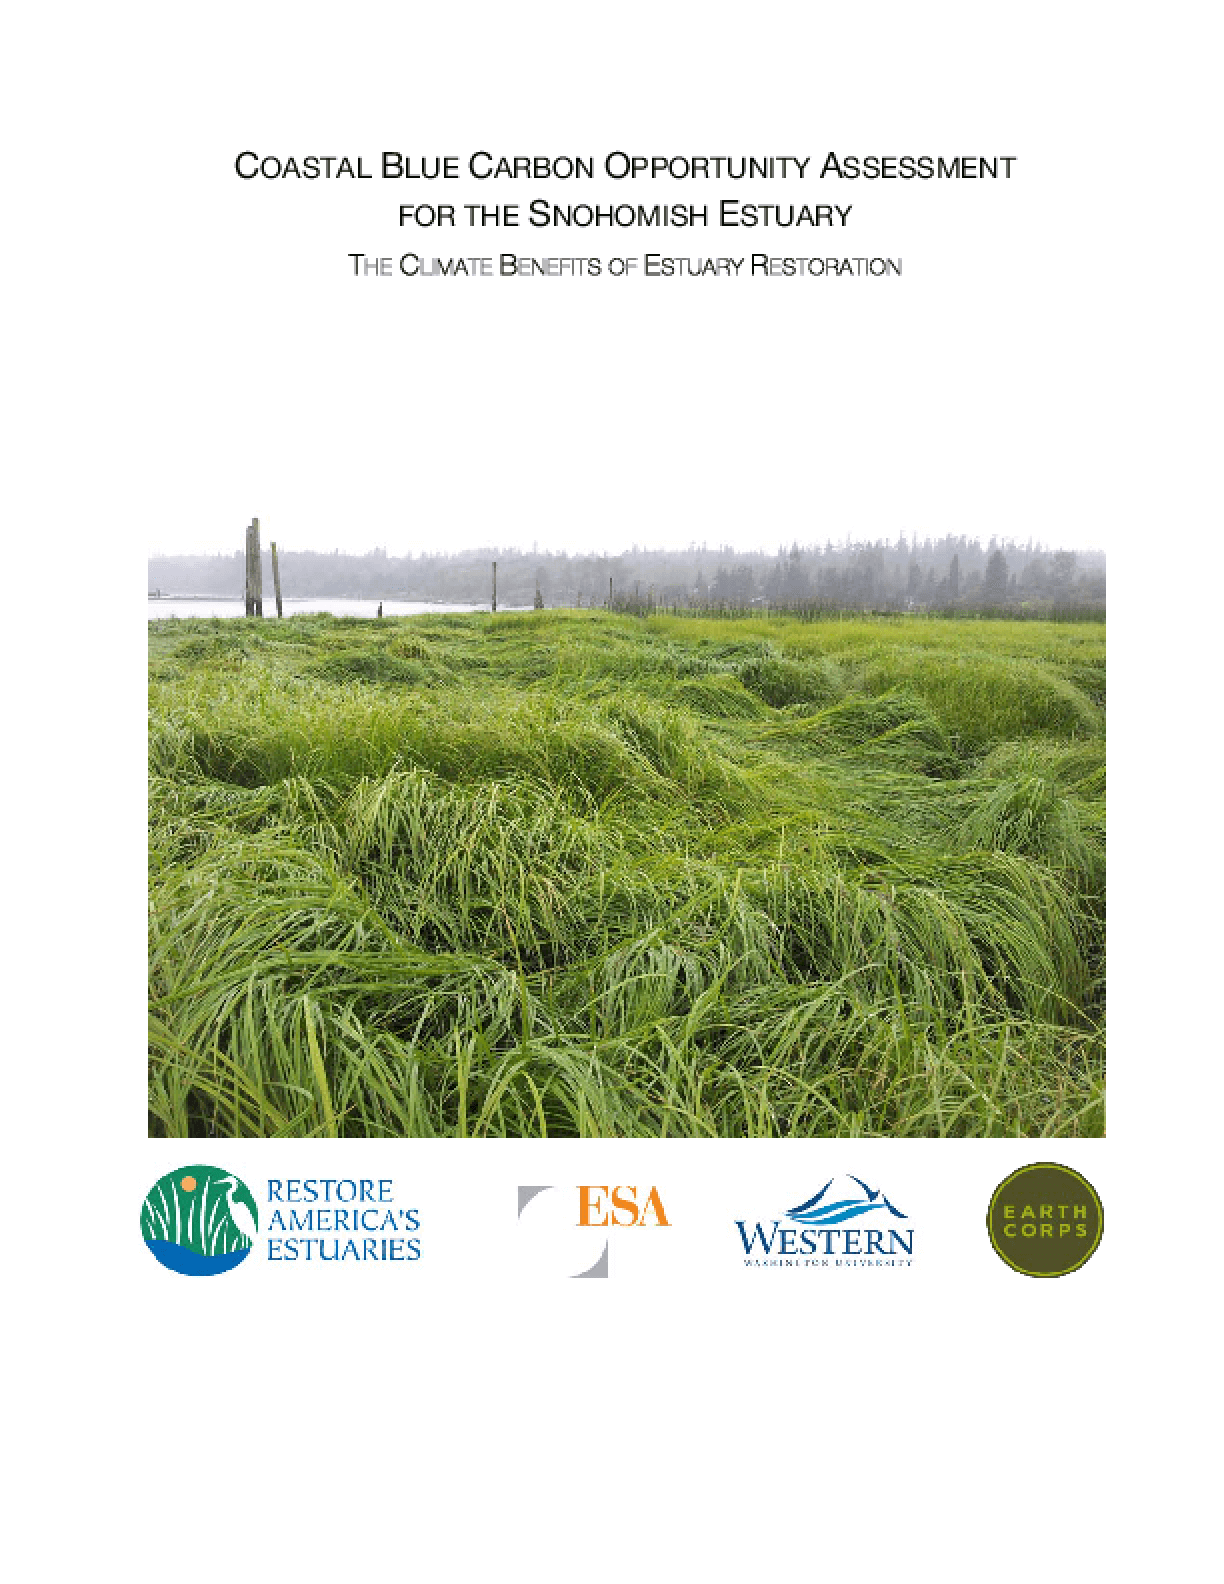 Coastal Blue Carbon Opportunity Assessment for Snohomish Estuary: The Climate Benefits of Estuary Restoration